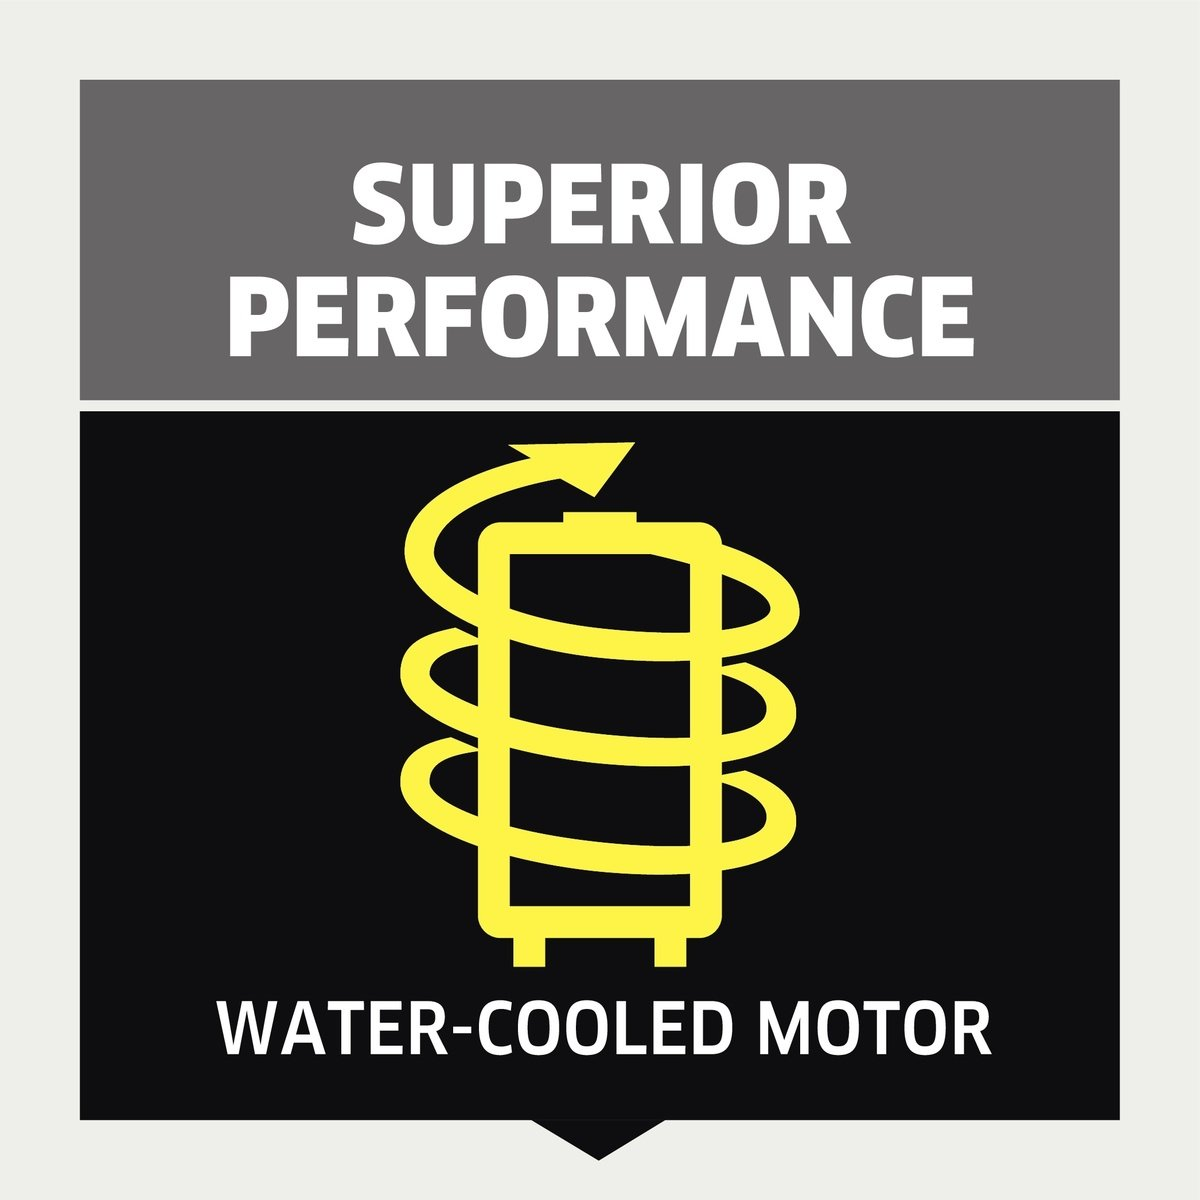 Water-cooled motor and outstanding performance